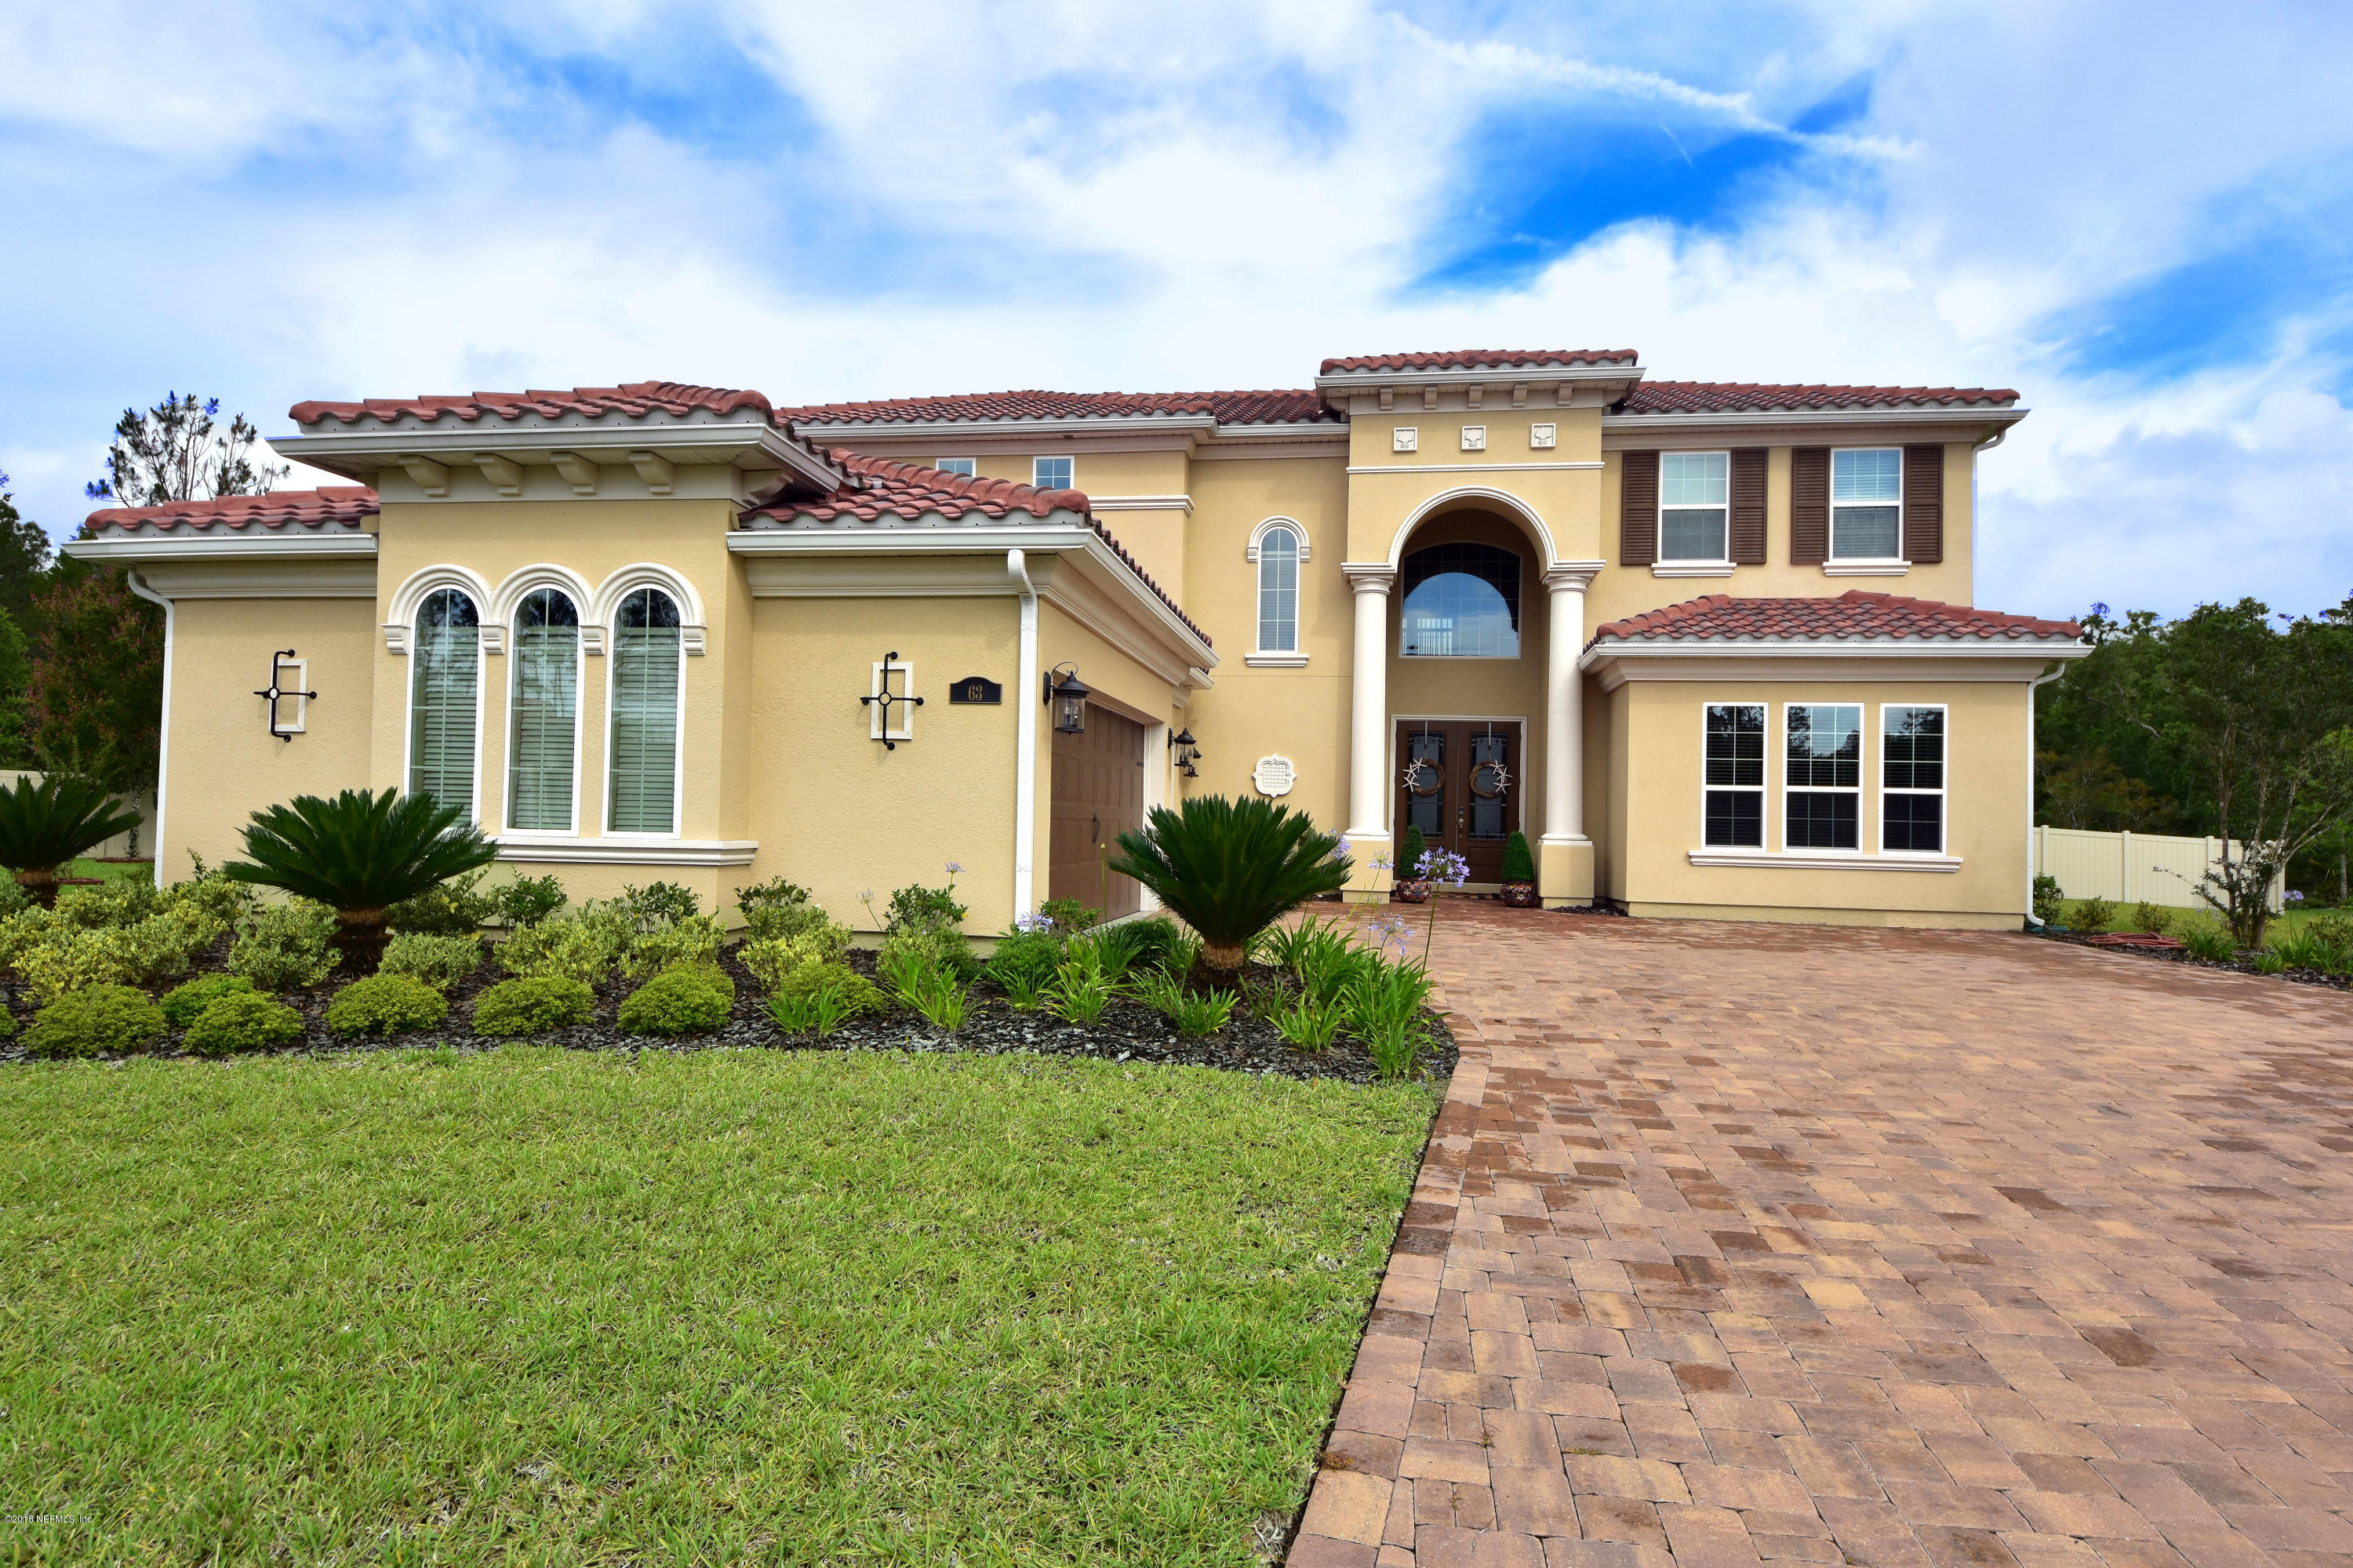 63 OVALO, ST AUGUSTINE, FLORIDA 32095, 5 Bedrooms Bedrooms, ,5 BathroomsBathrooms,Residential - single family,For sale,OVALO,937617